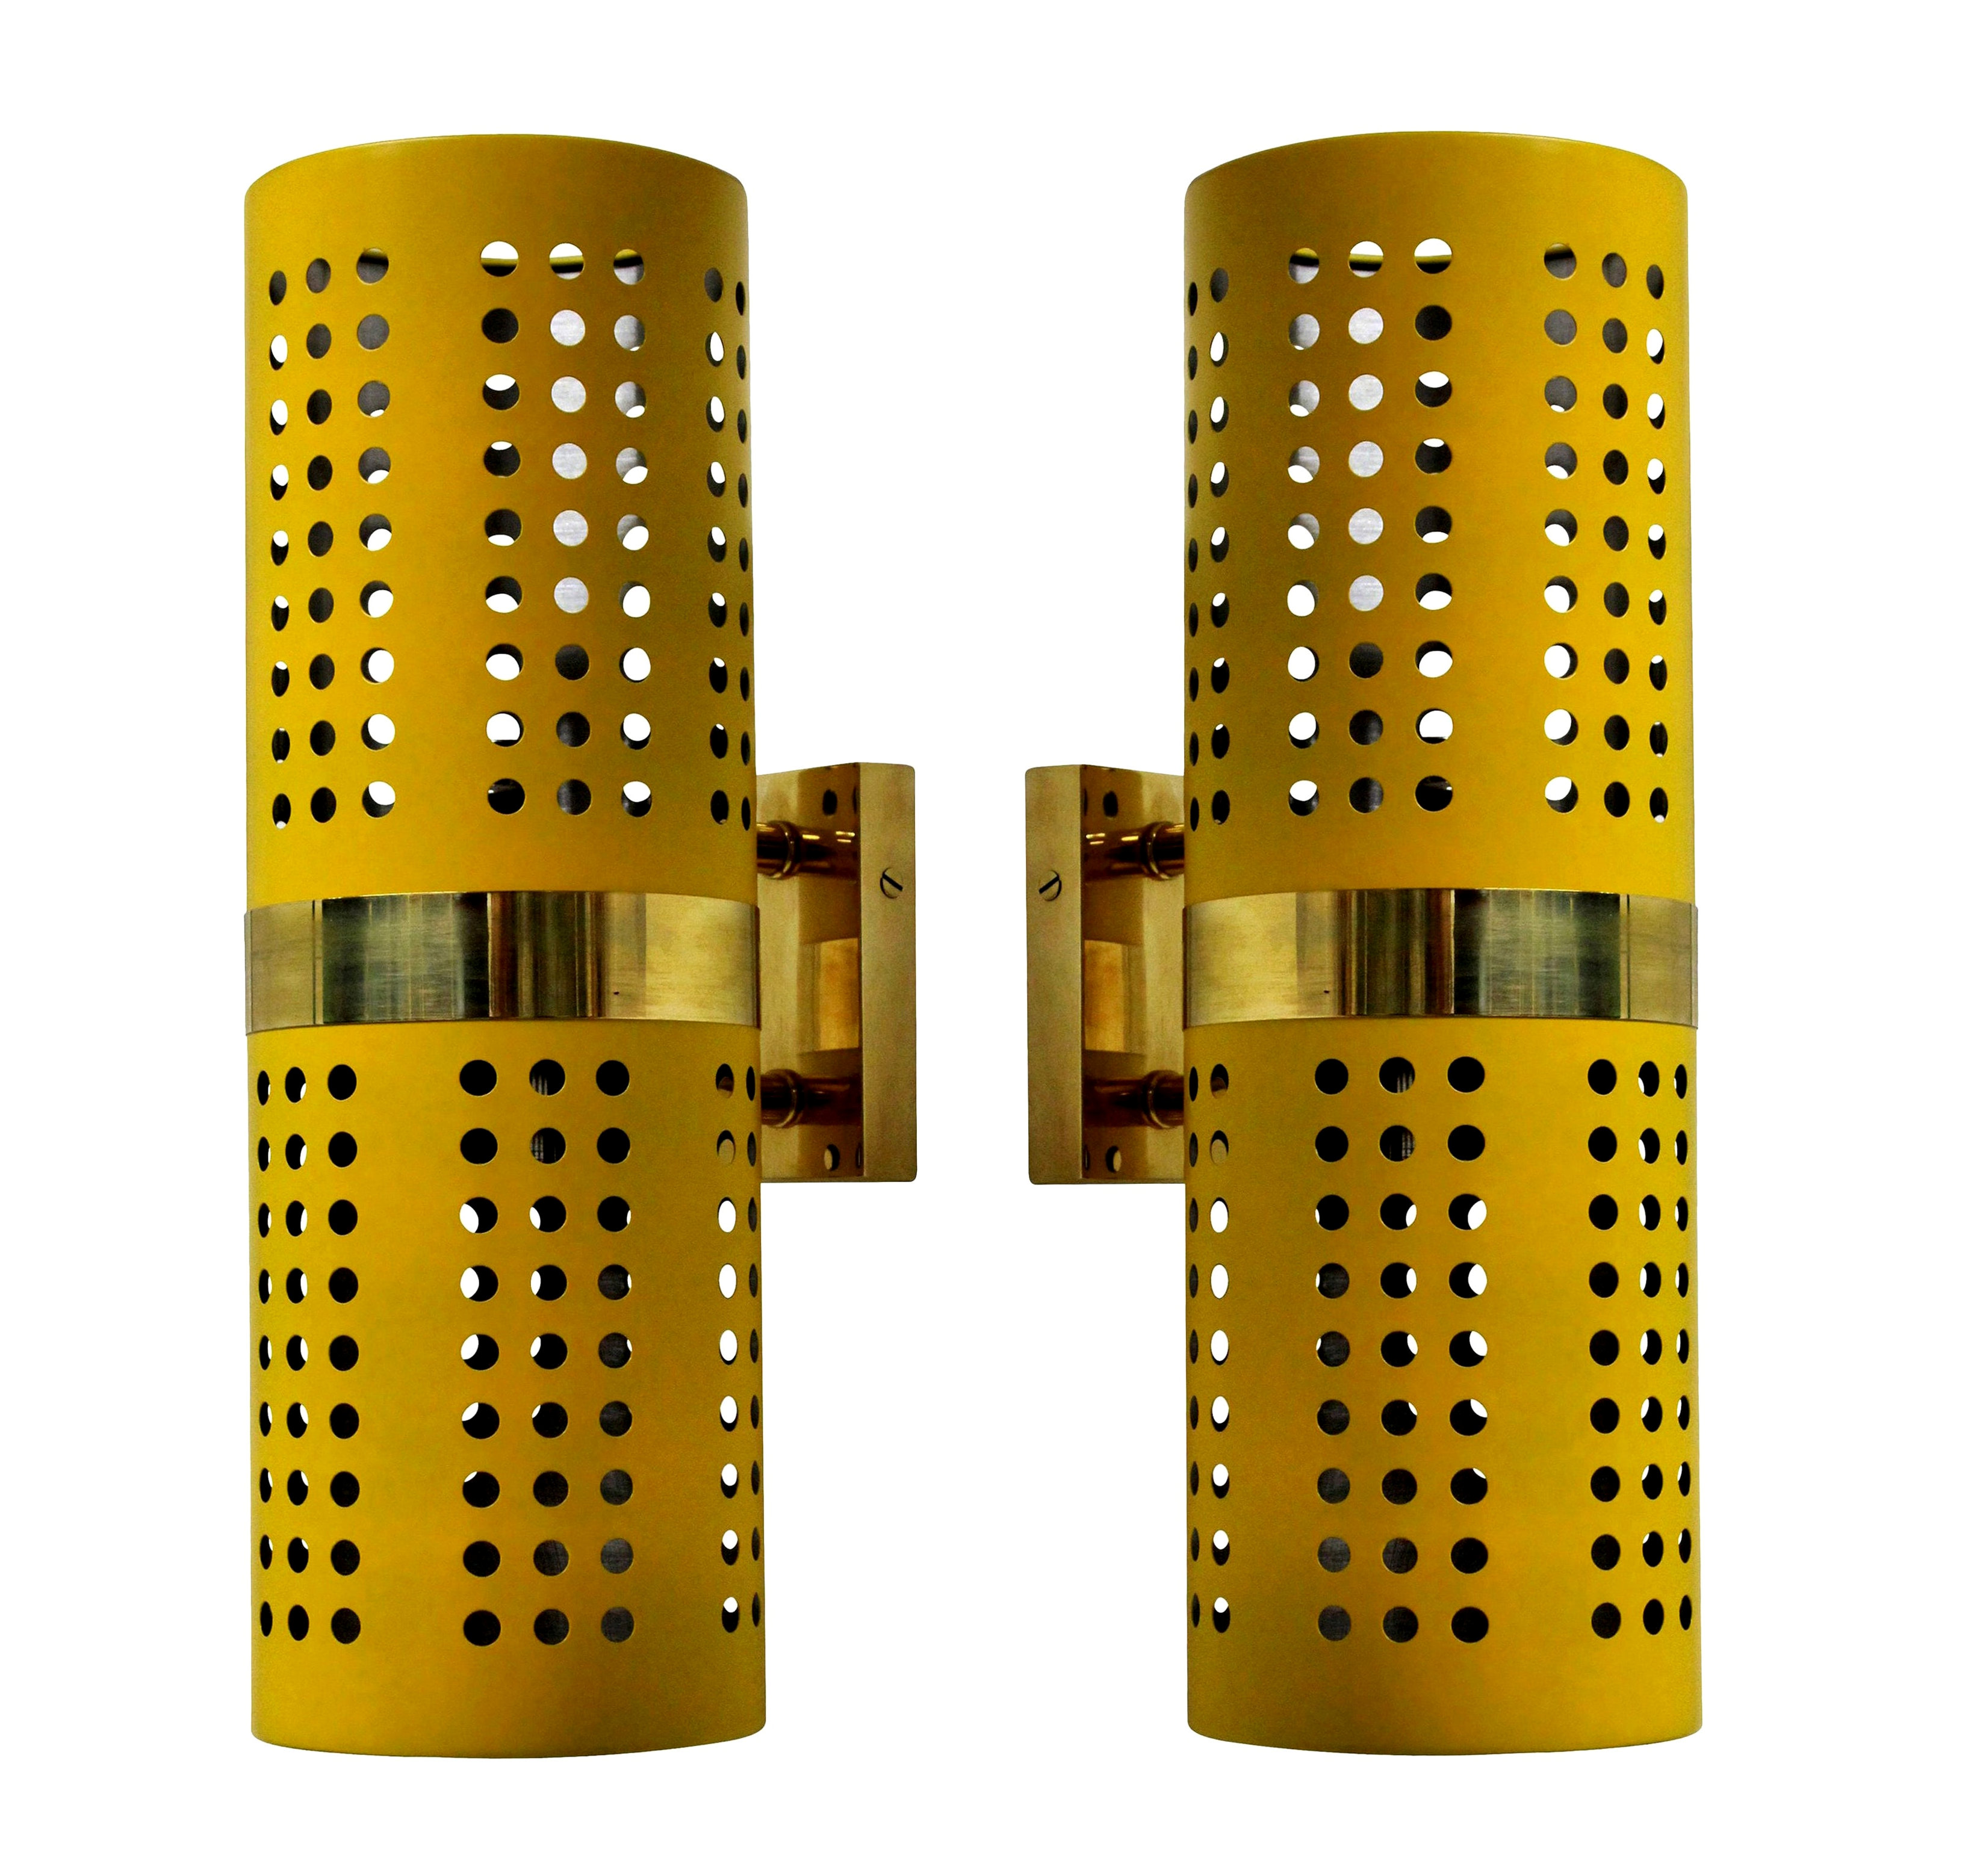 A PAIR OF 60'S STYLE WALL LIGHTS IN CANARY YELLOW